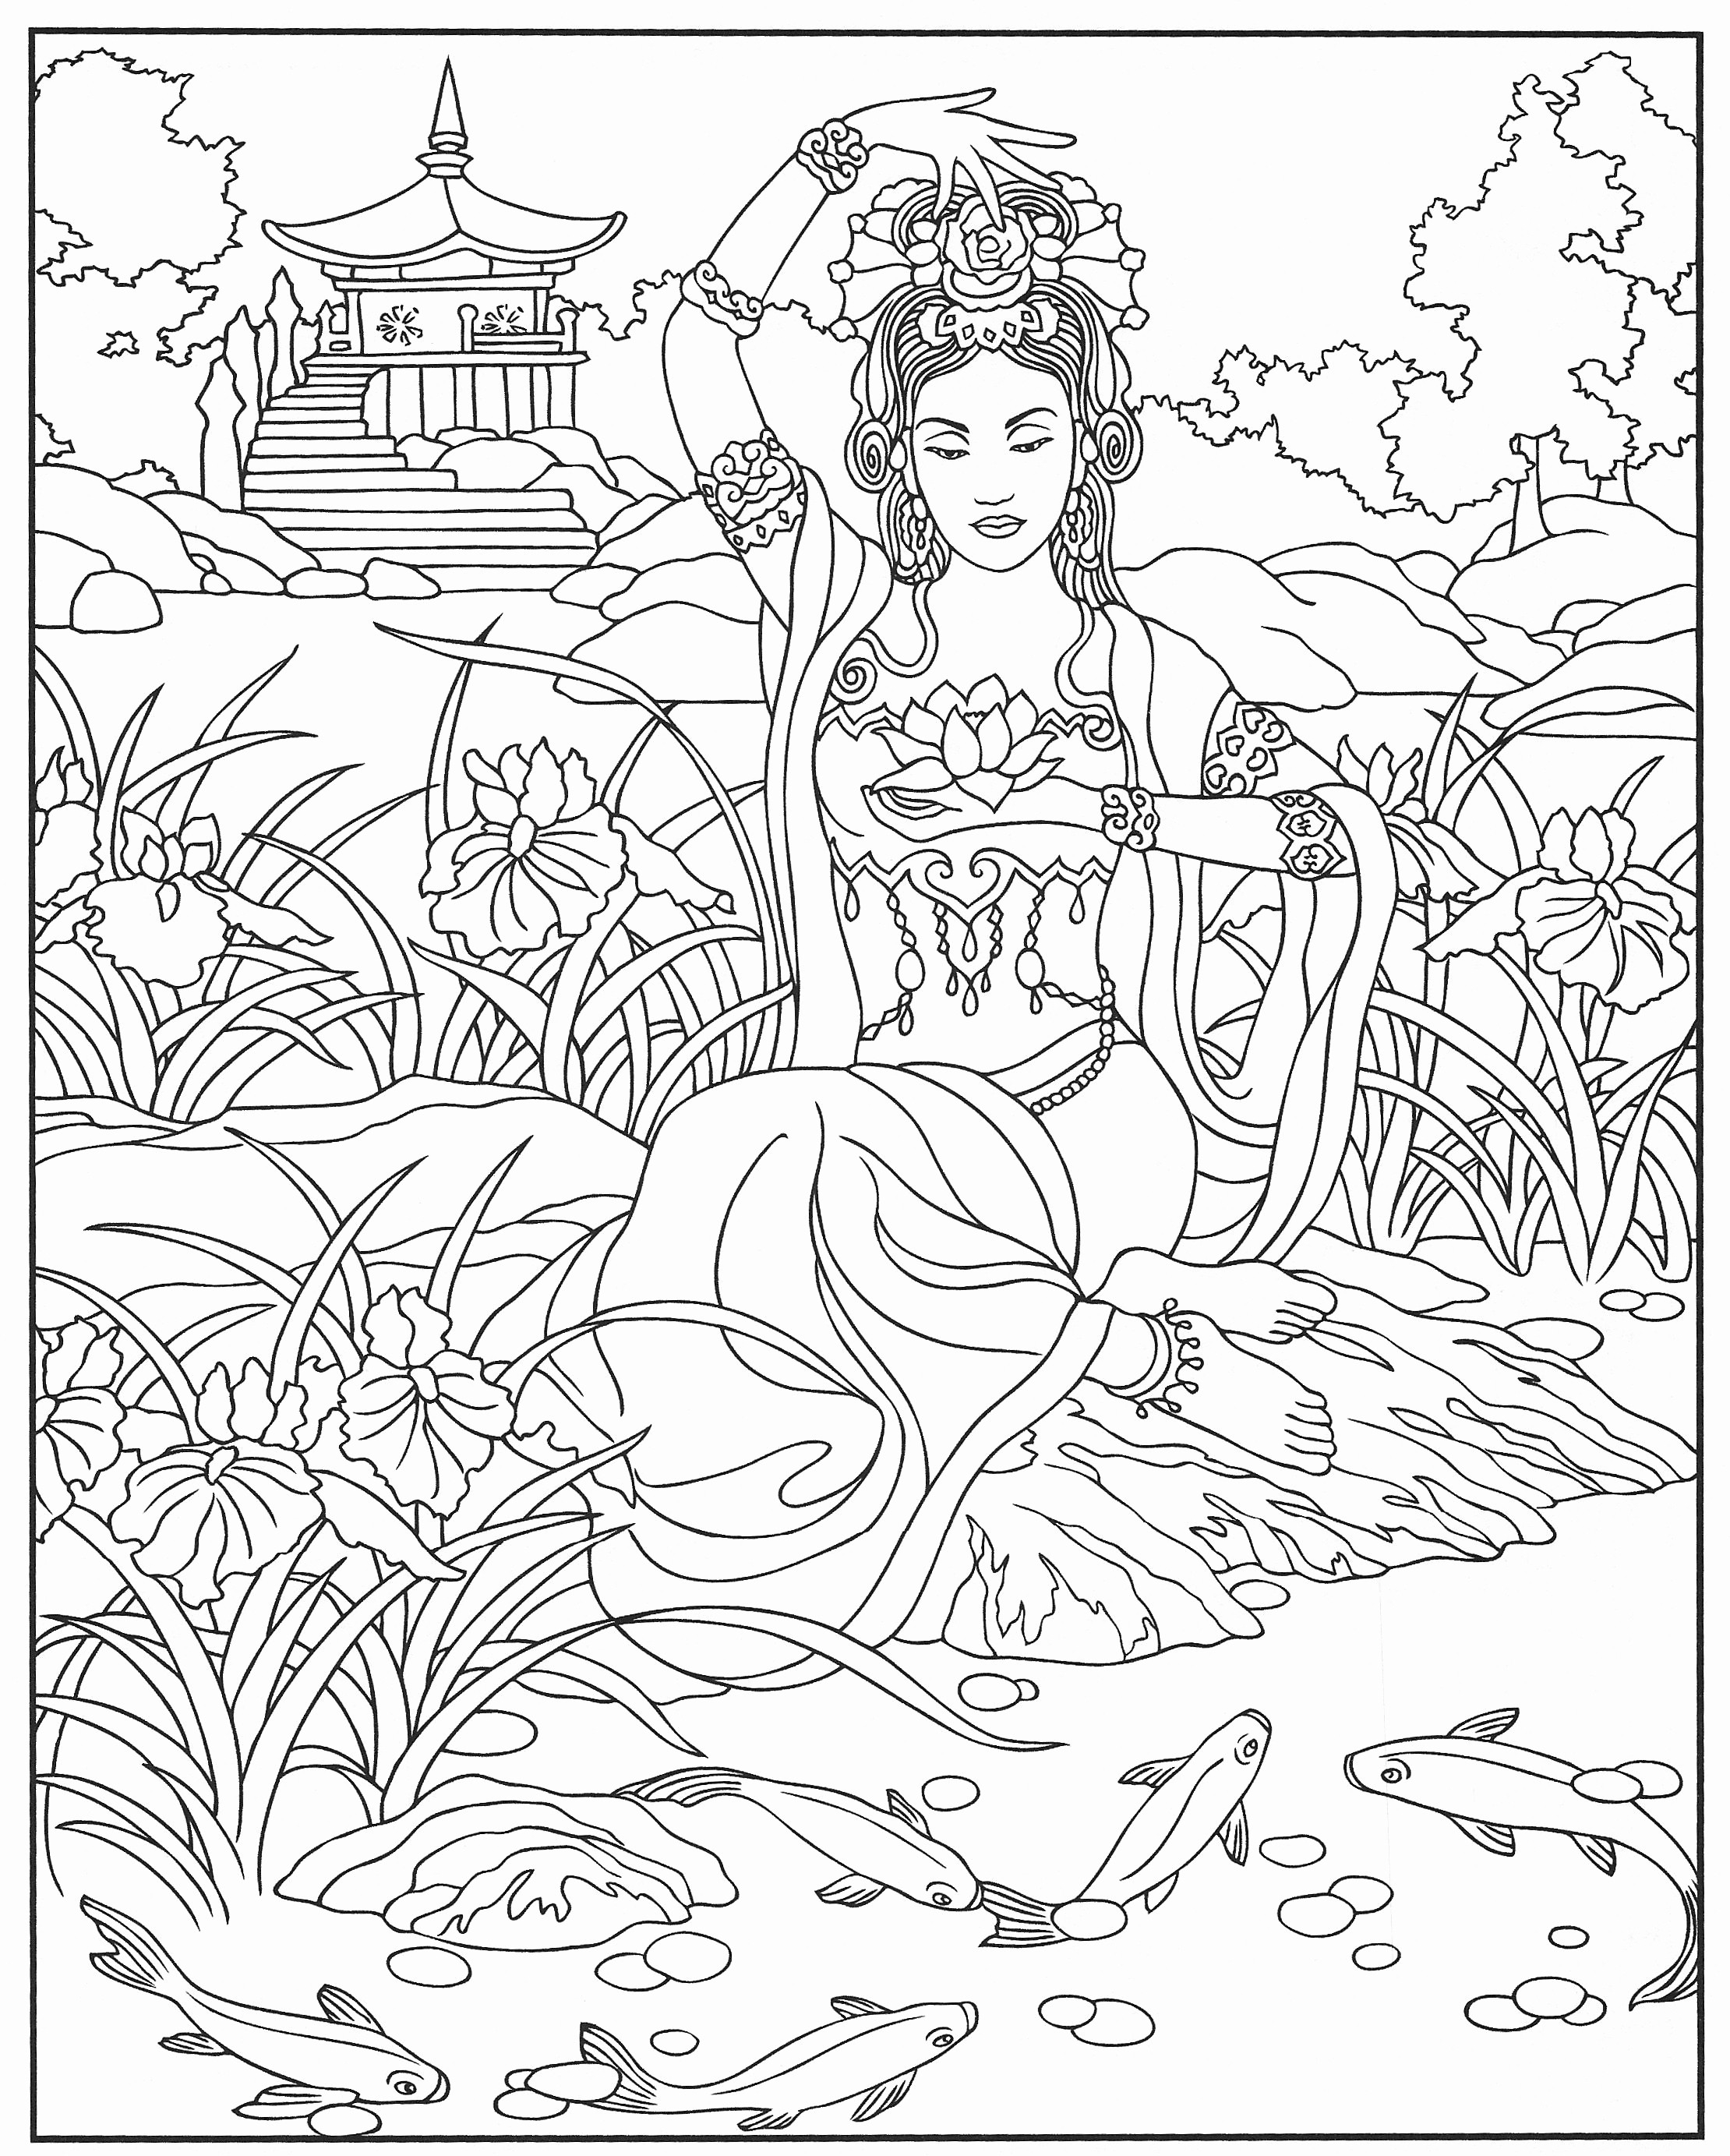 Library Coloring Pages - Fresh Full Size Coloring Pages Printables